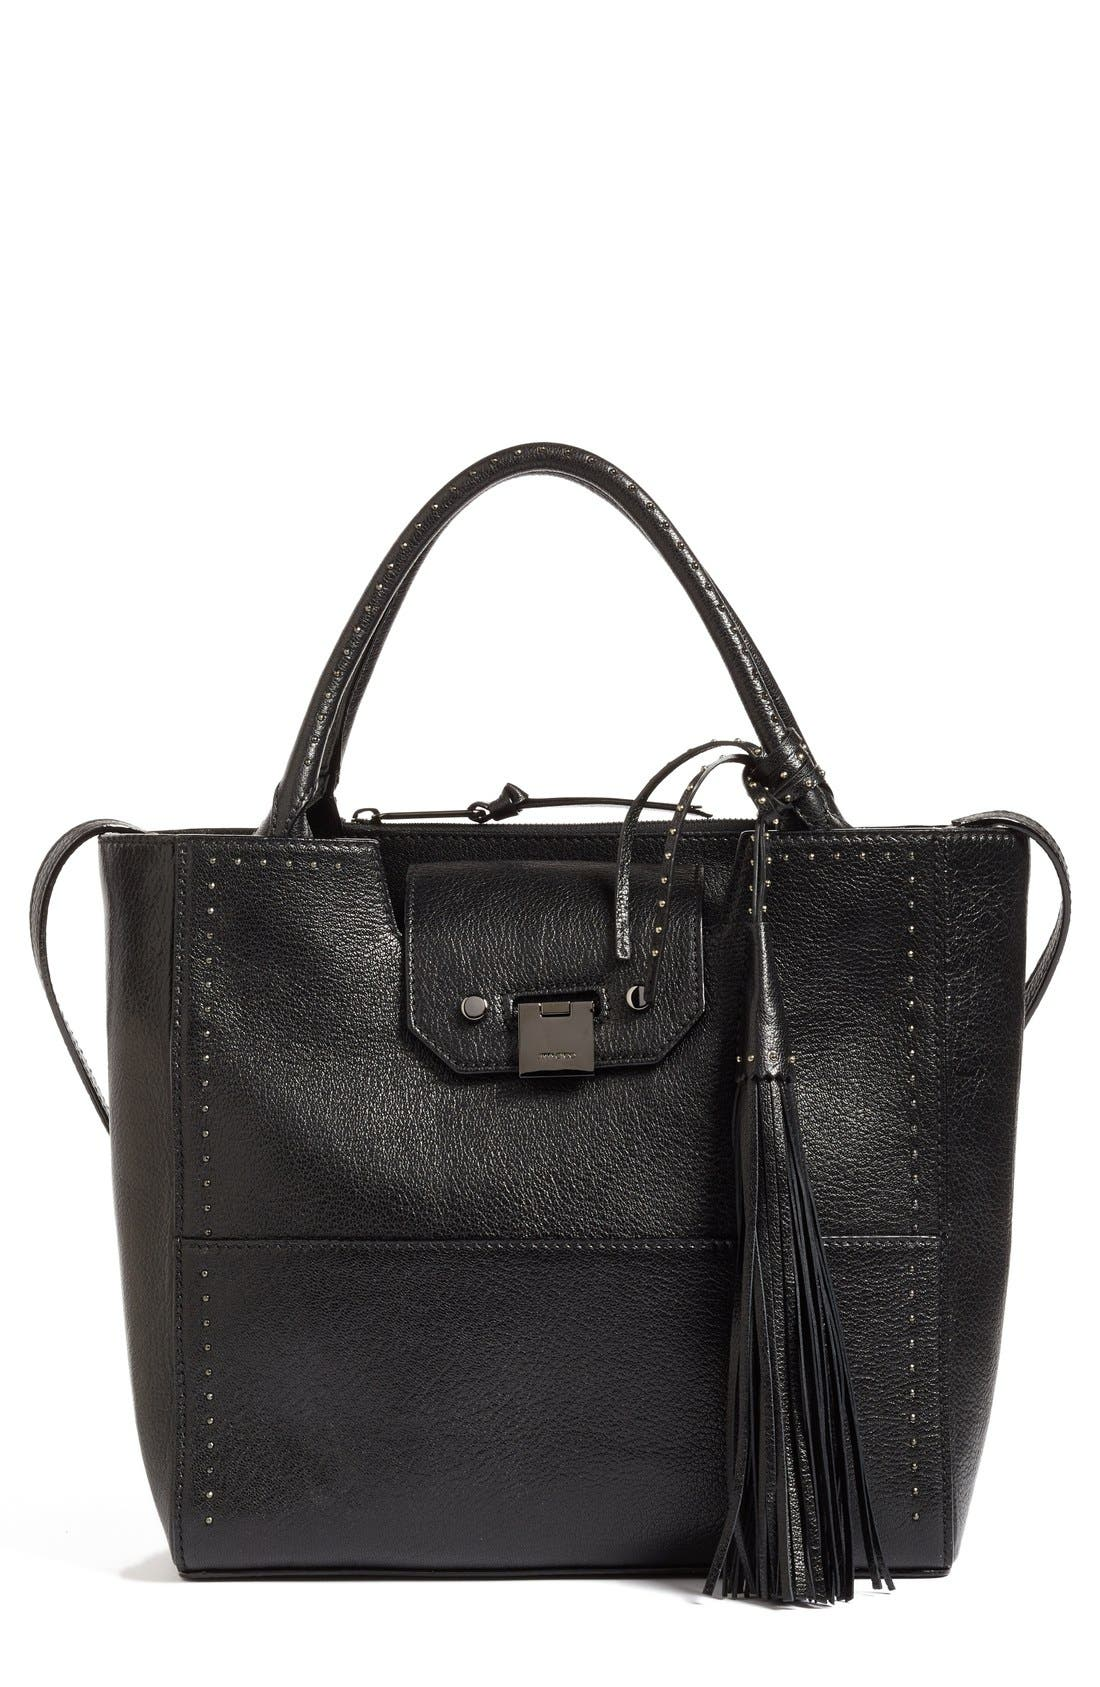 JIMMY CHOO Robin Grainy Goatskin Leather Tote